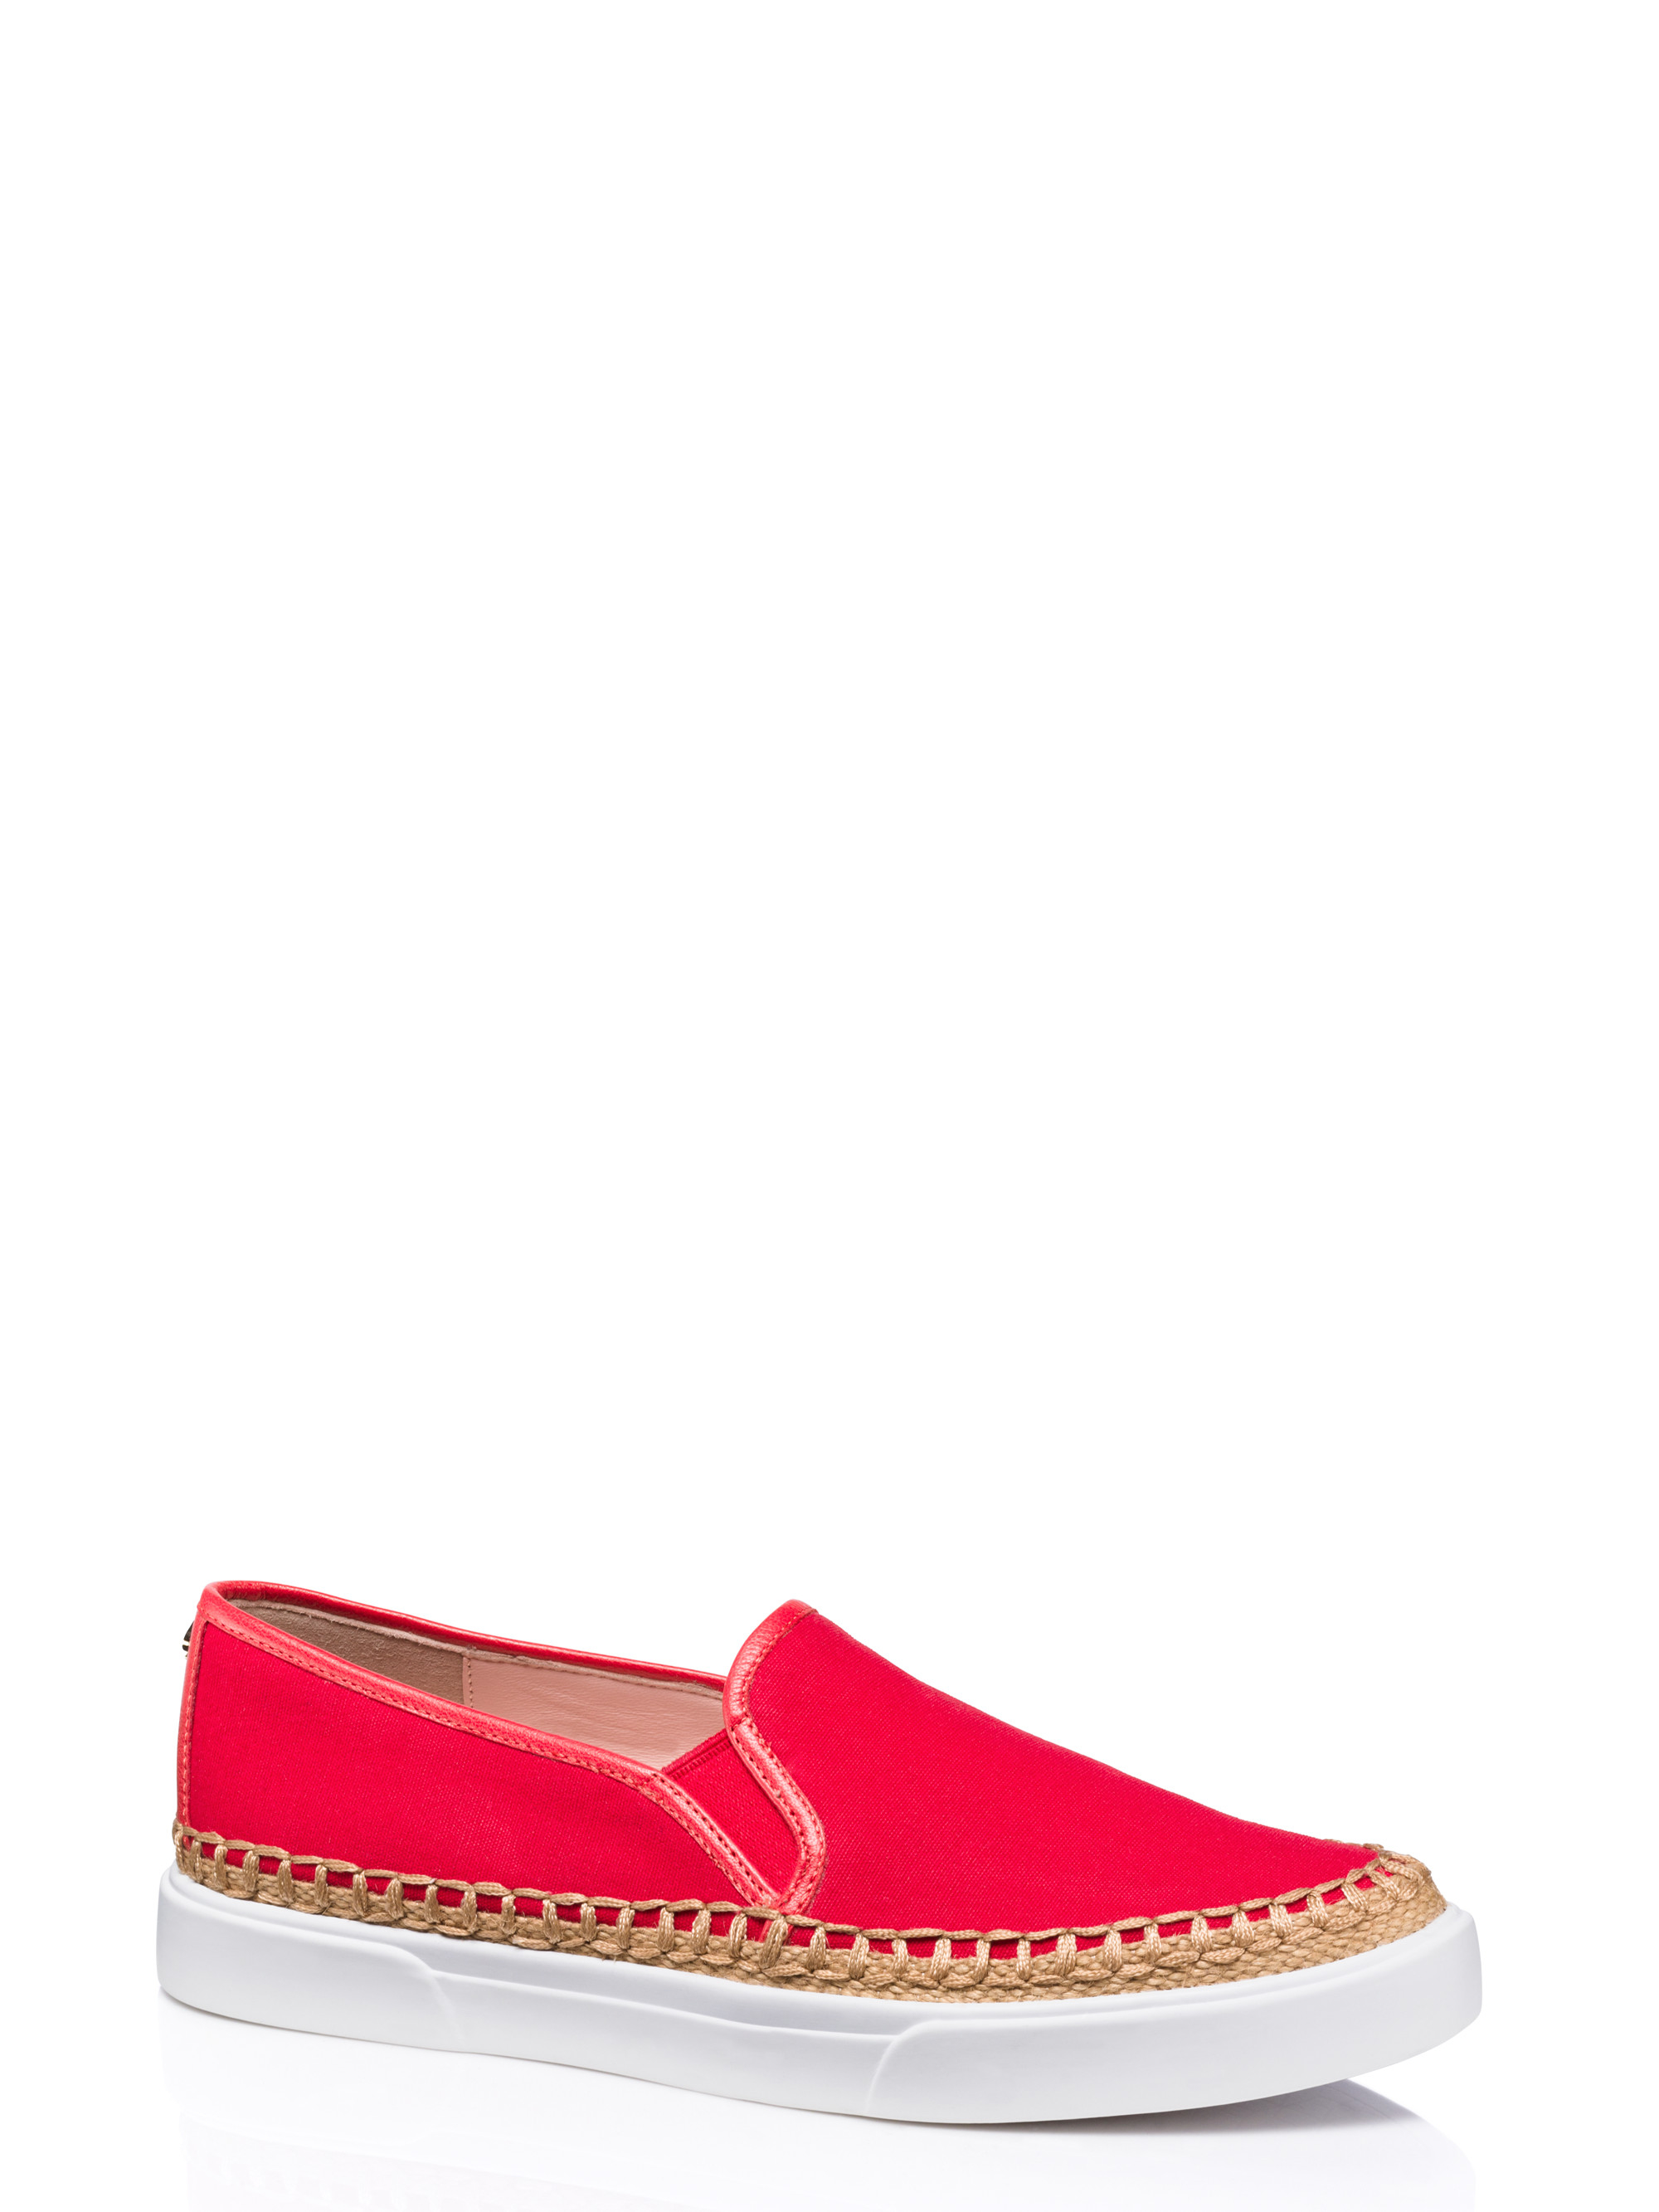 Lyst kate spade new york cory flats in red for Kate spade new york flats